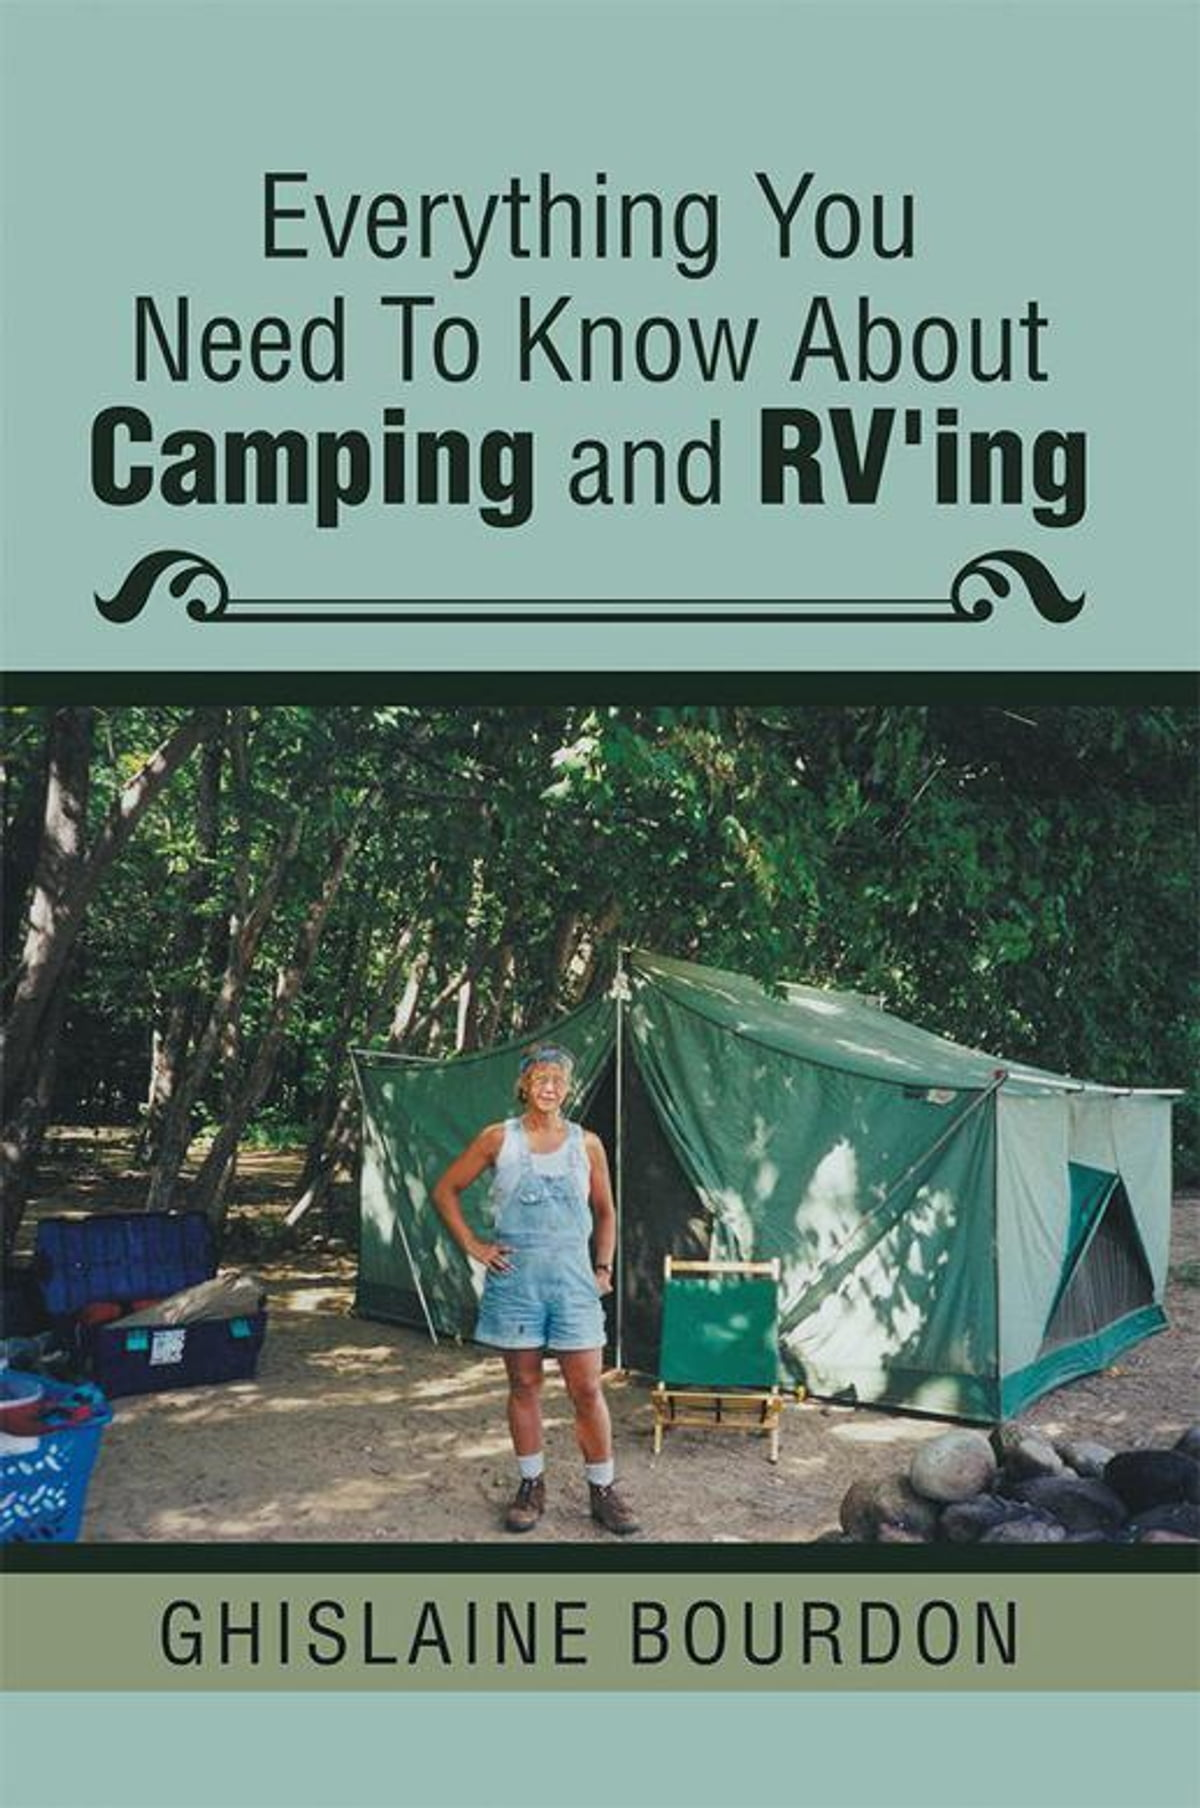 Everything You Need to Know About Camping picture